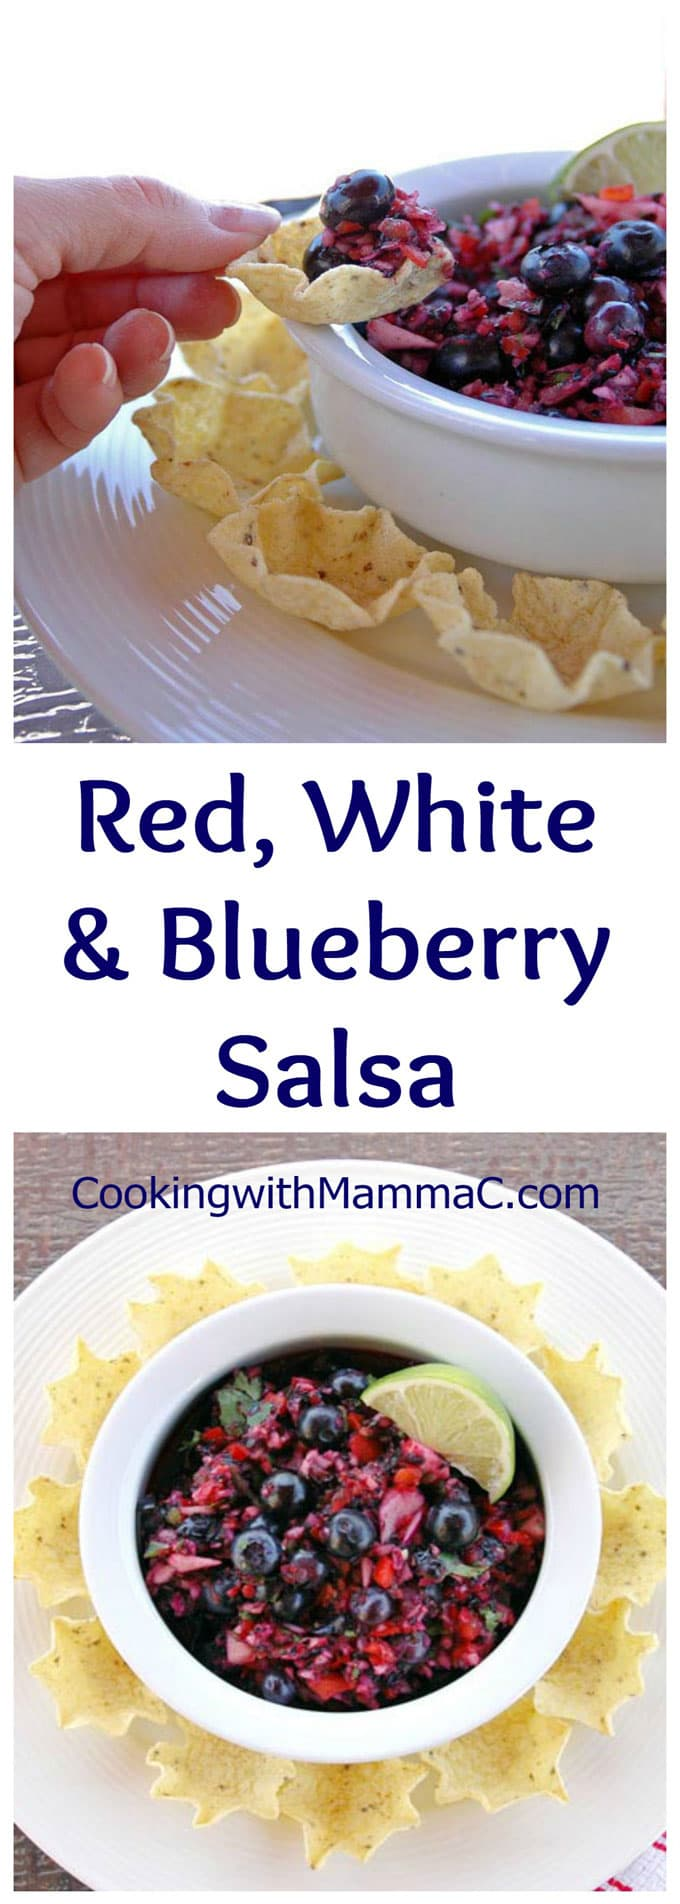 This Red, White and Blueberry Salsa is sweet, savory and delicious! Plus, it's vegan and gluten free. I dare you to stop eating it!